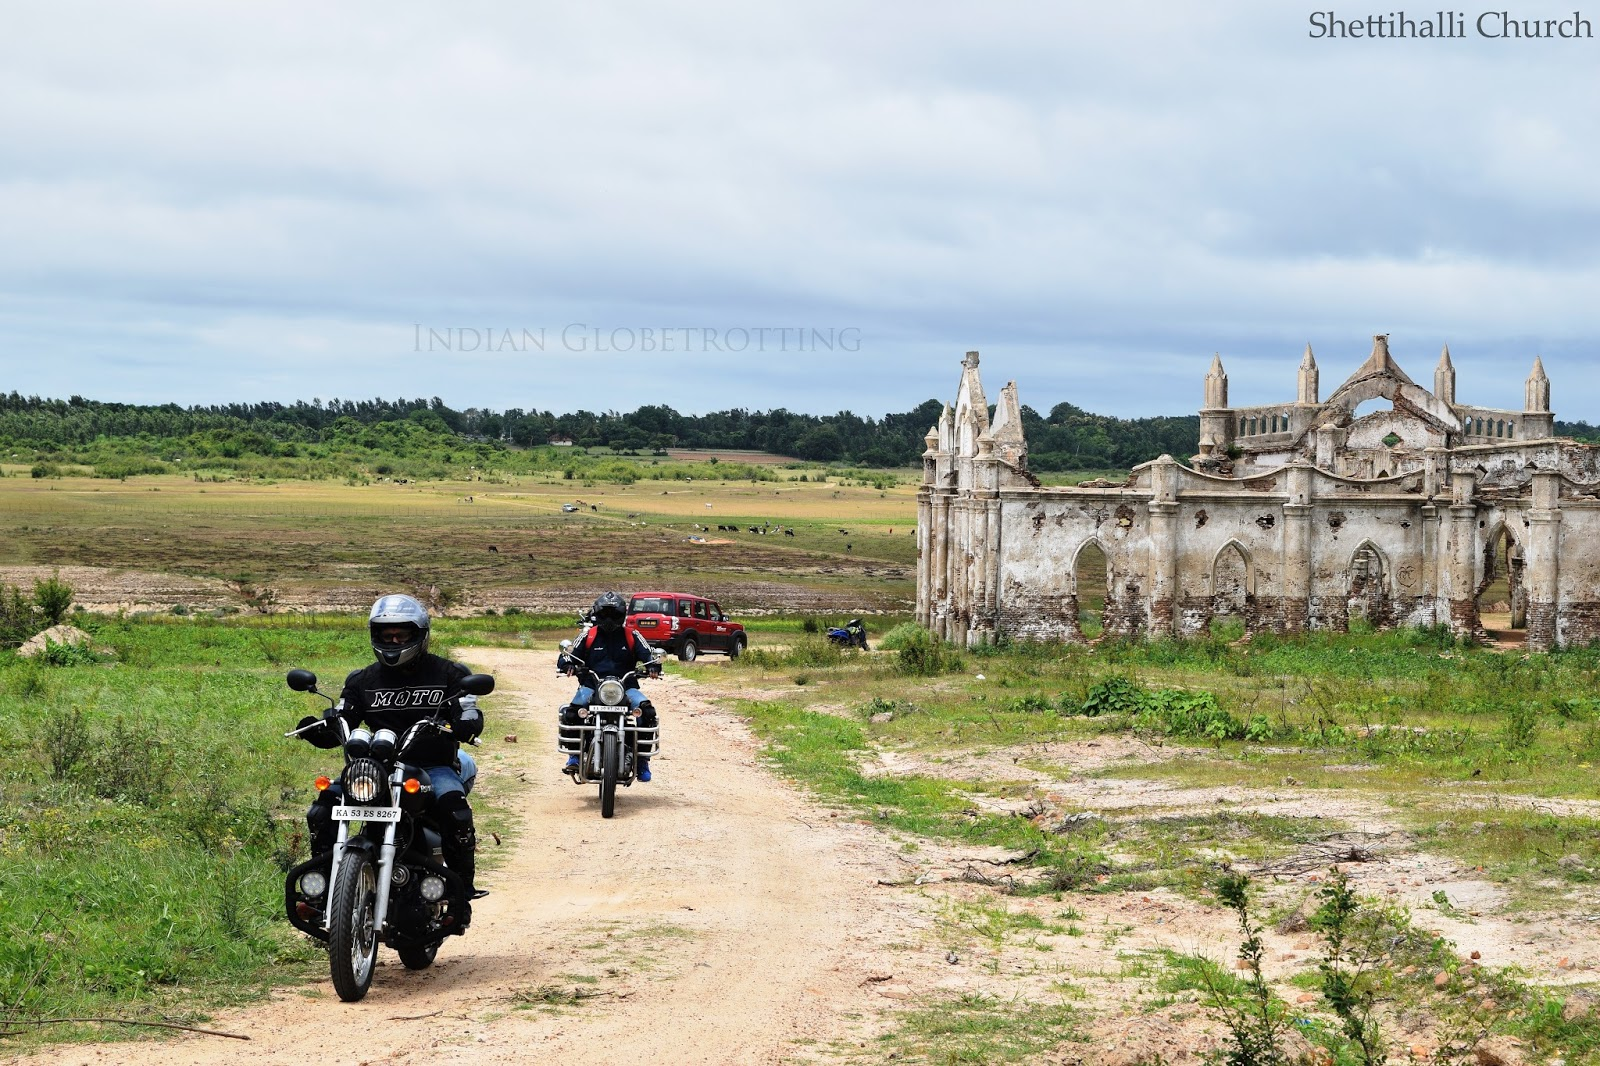 Shettihalli church is one of the best place for bike trip from bangalore